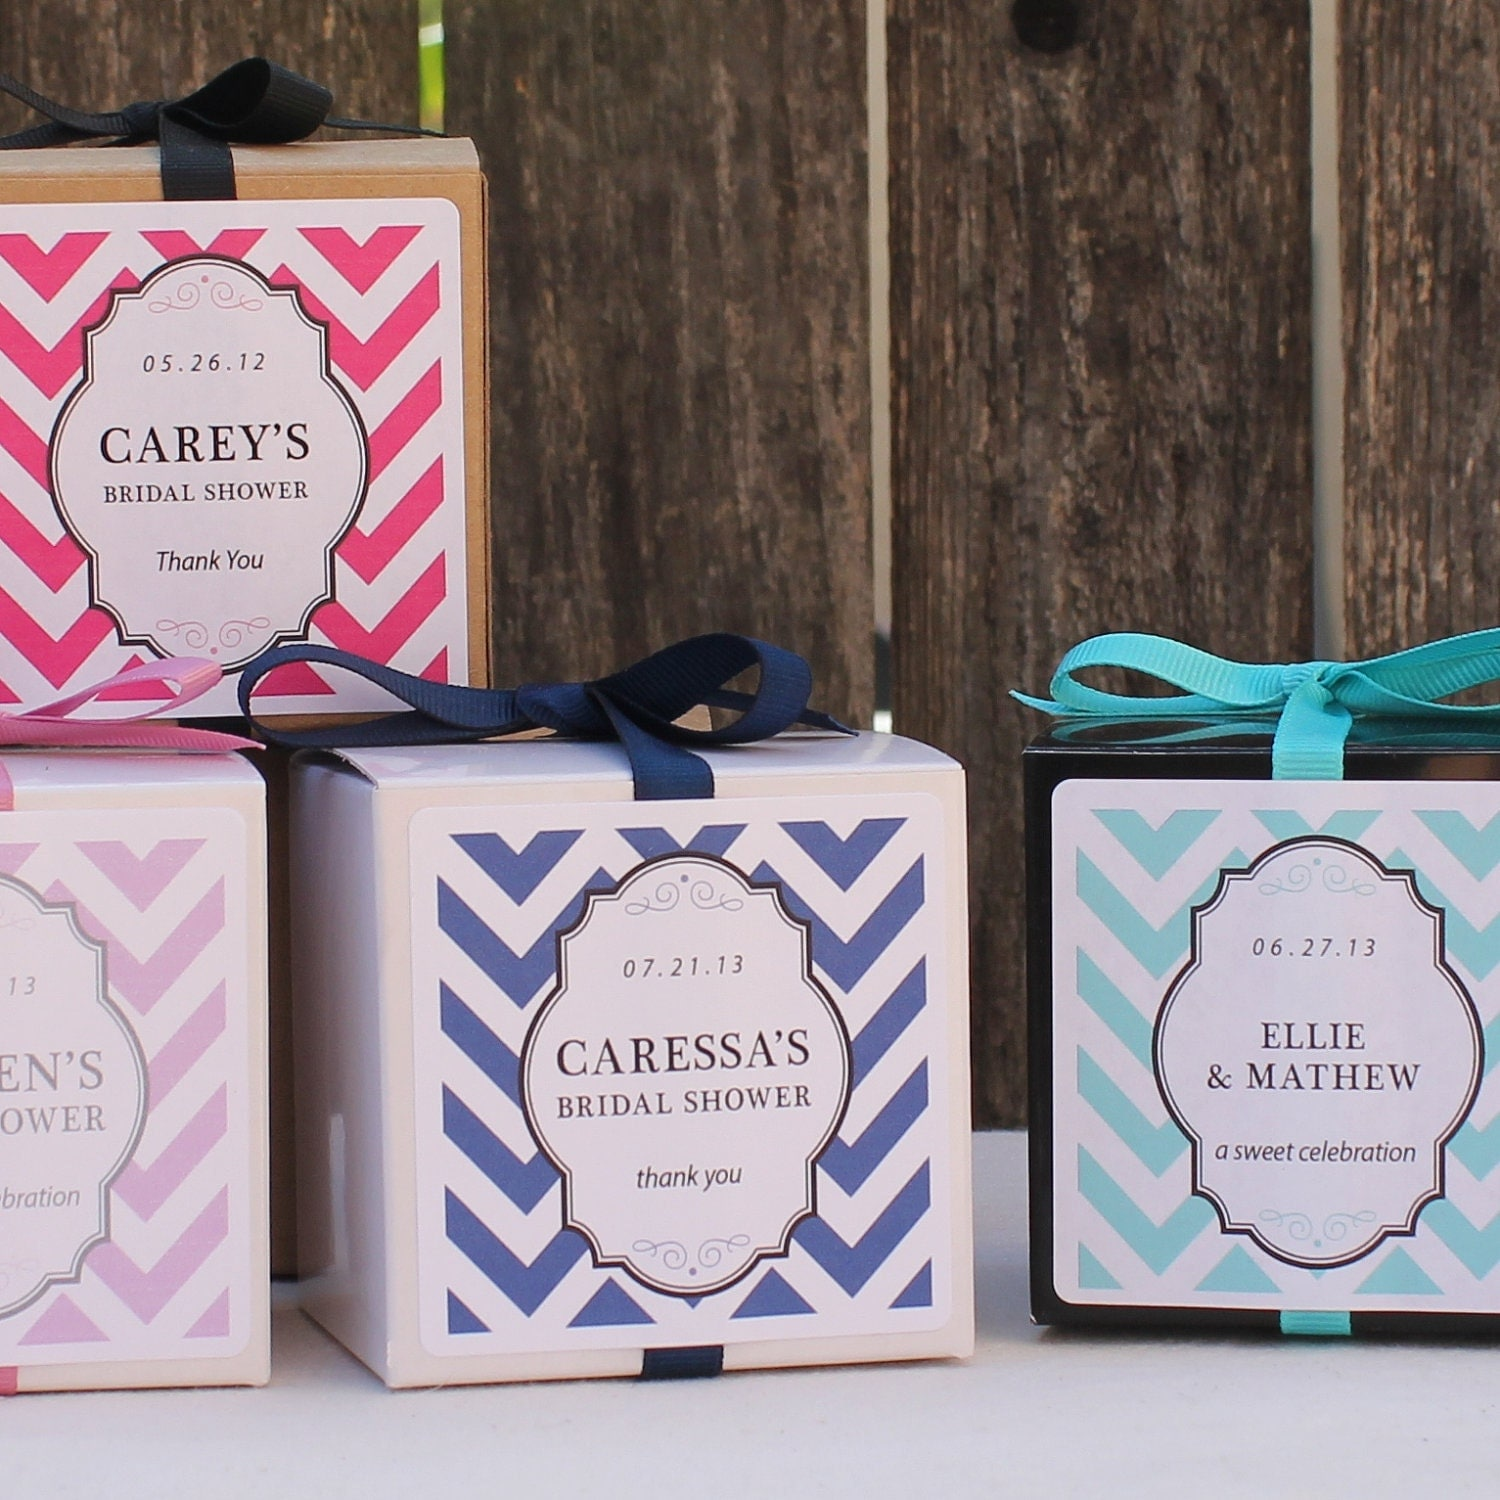 Boxes For Baby Shower Favors: 18 Chevron Design Personalized Favor Boxes ANY By Thefavorbox